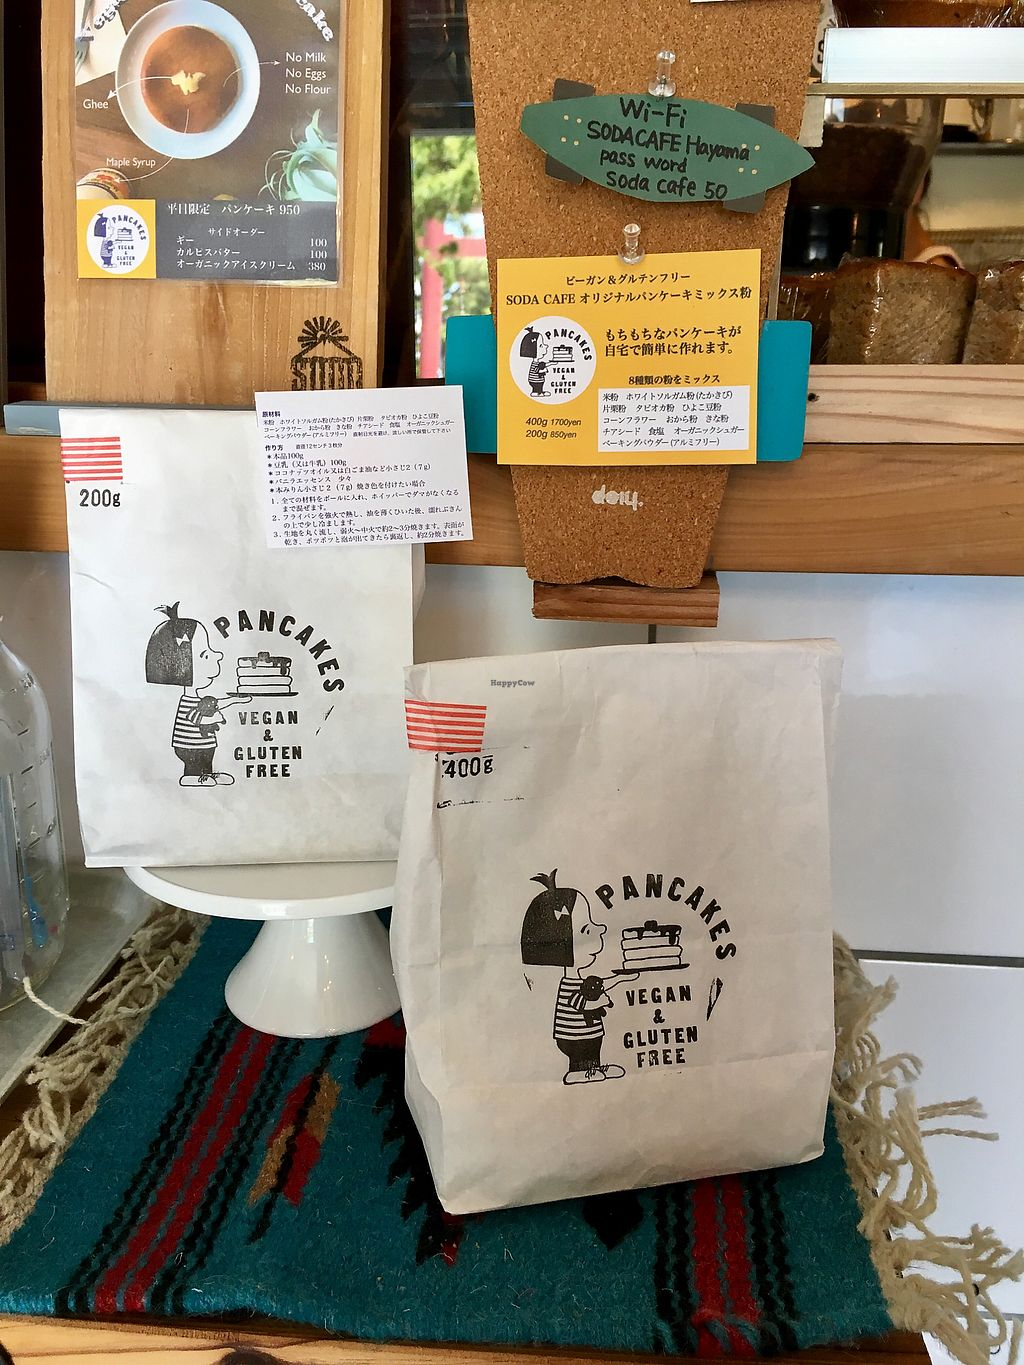 """Photo of Soda Cafe  by <a href=""""/members/profile/Becky_scott"""">Becky_scott</a> <br/>Vegan pancakes to go <br/> January 30, 2018  - <a href='/contact/abuse/image/97248/352649'>Report</a>"""